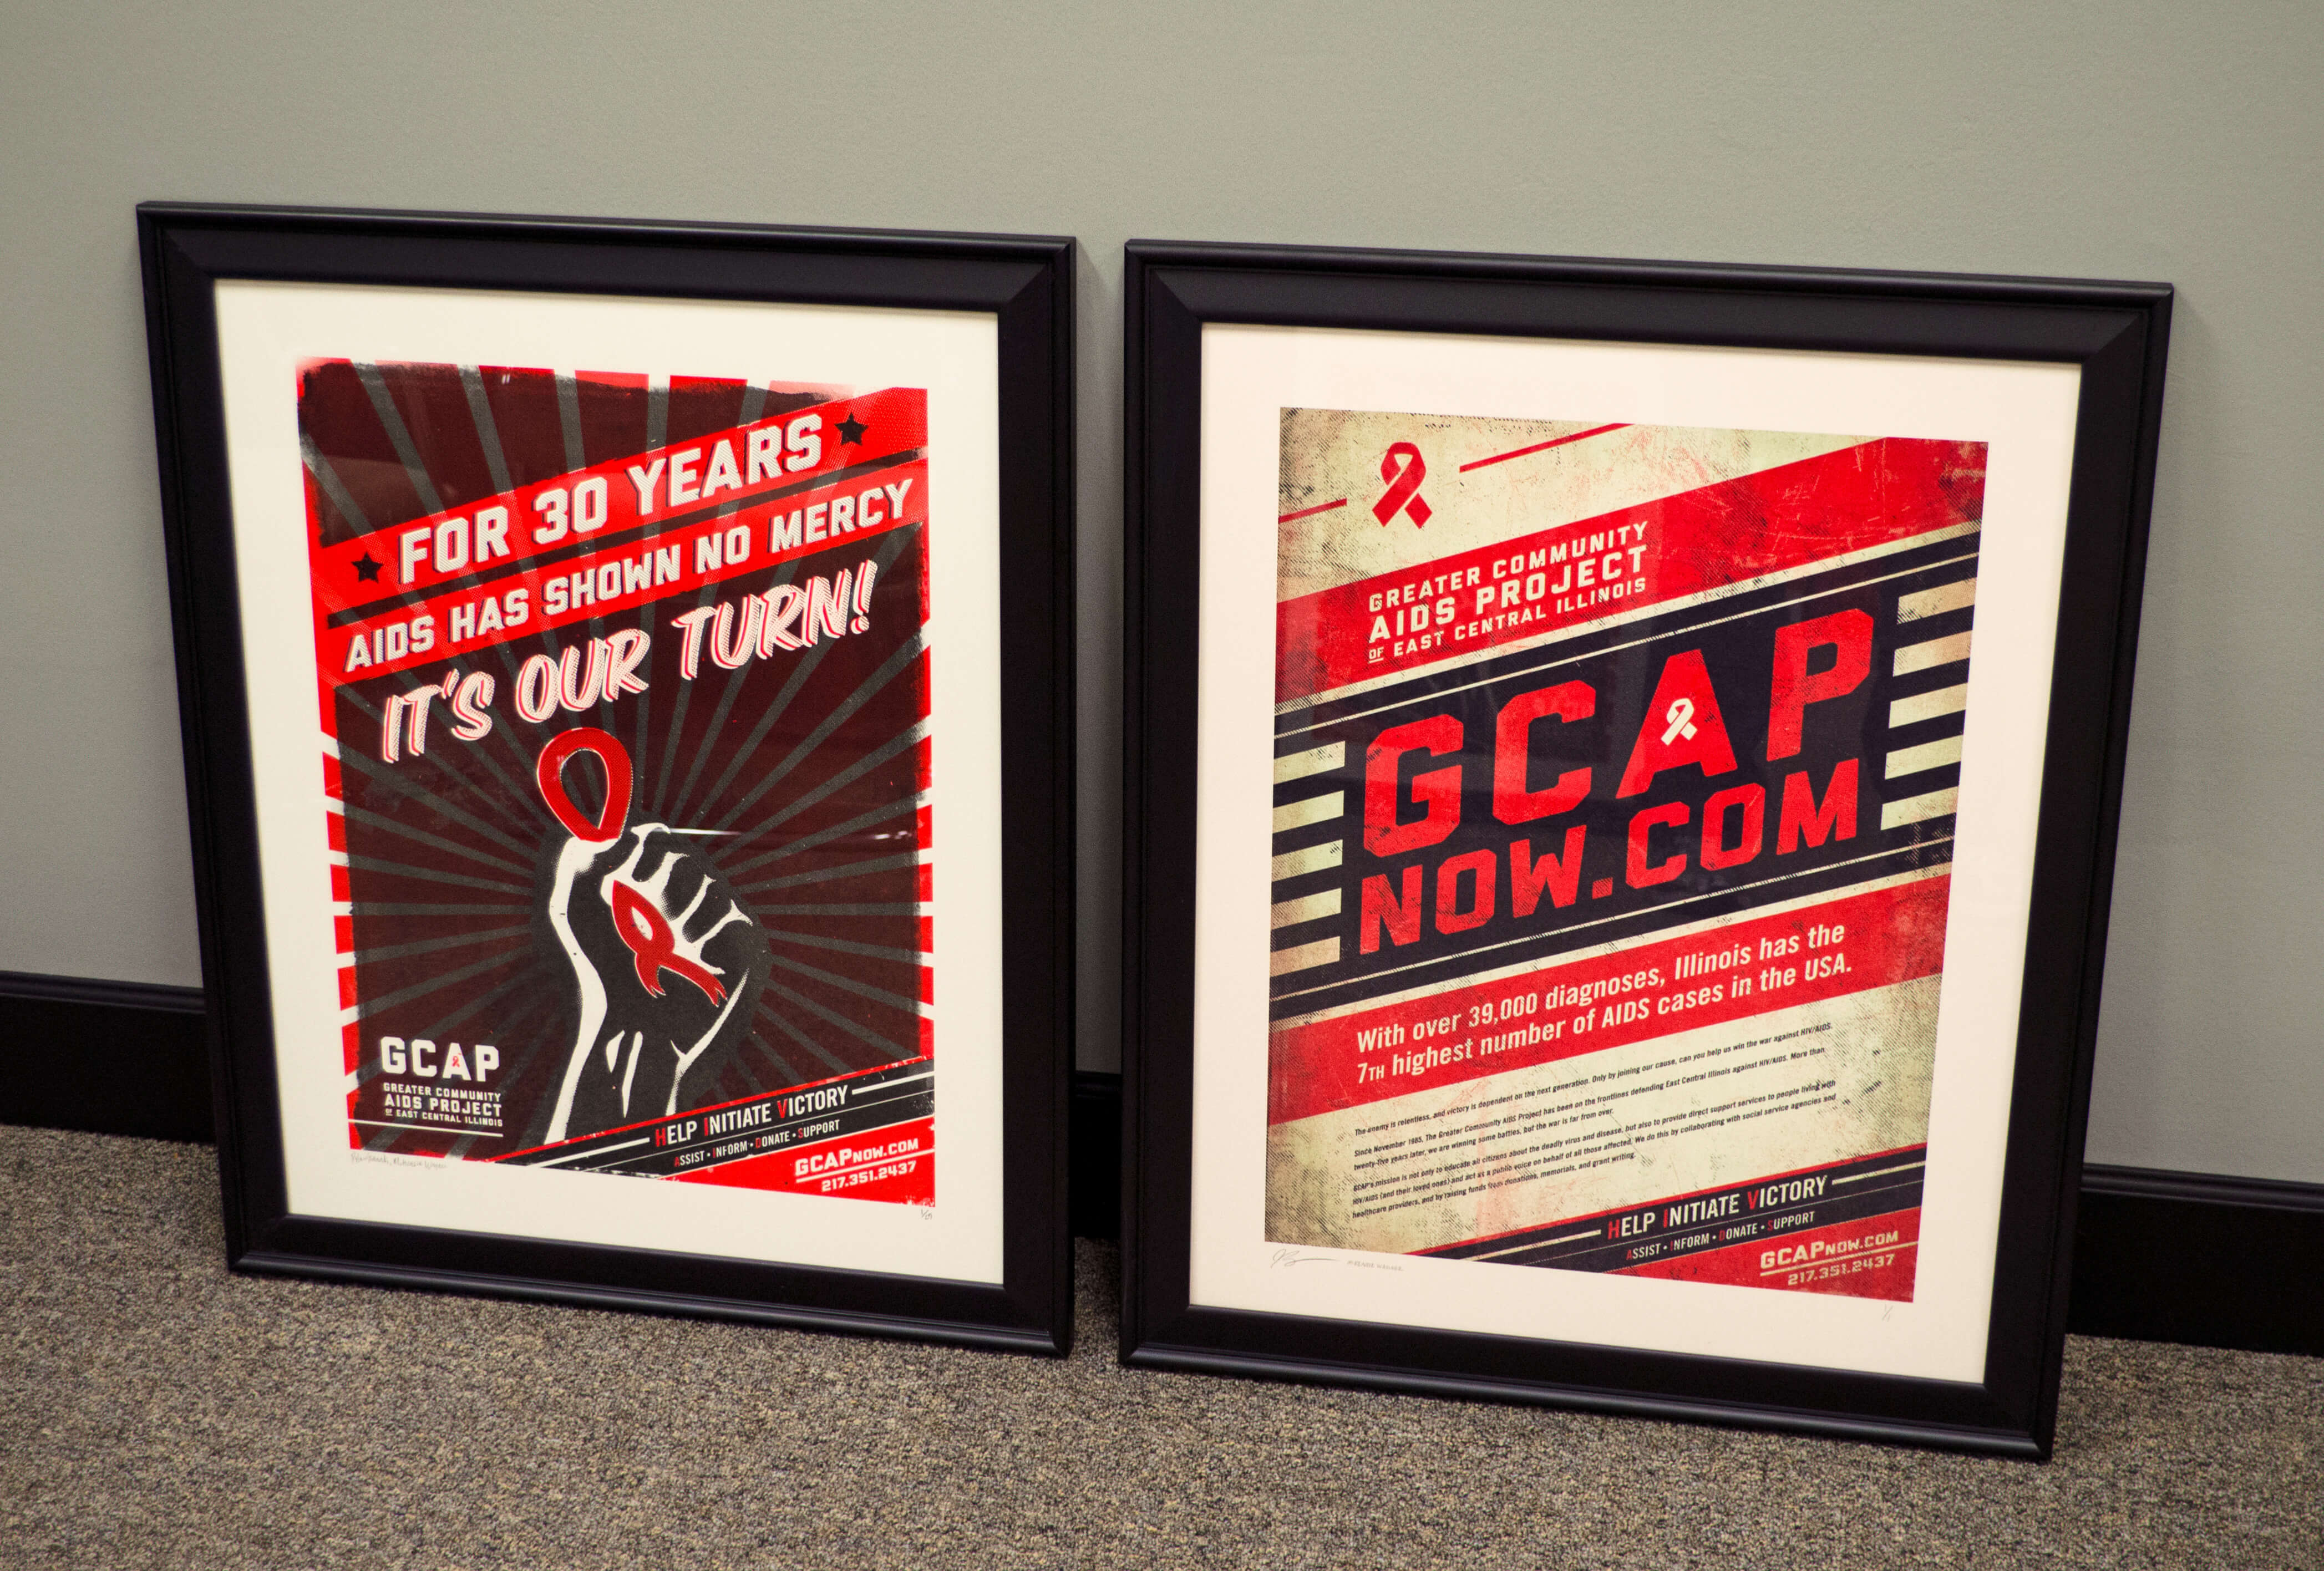 Greater Community Aids Project - Awareness Campaign